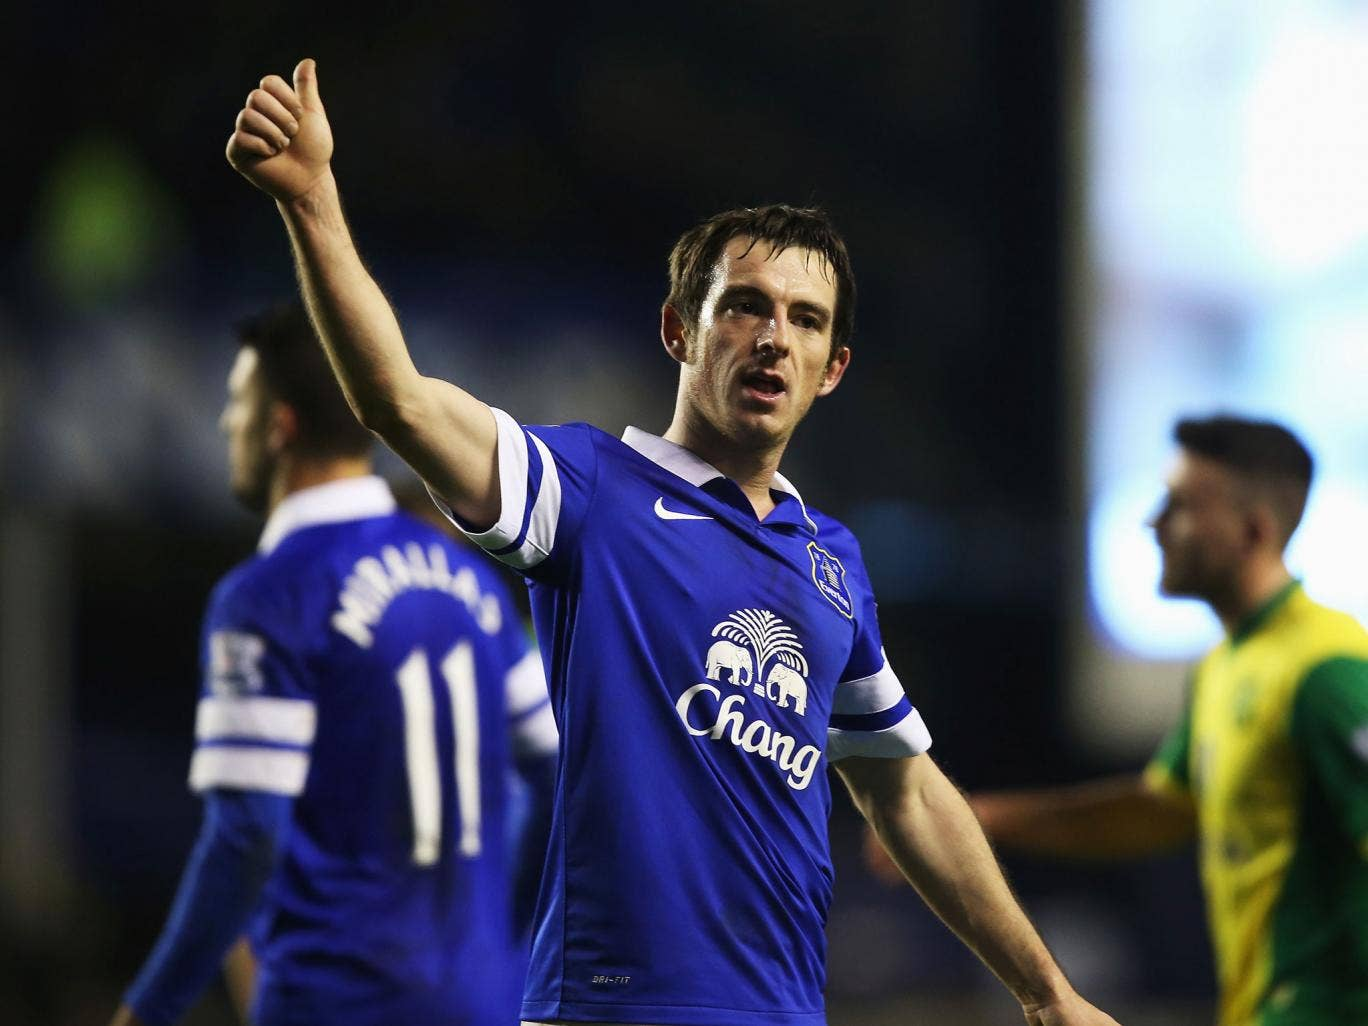 Leighton Baines has signed a new four-year contact with Everton